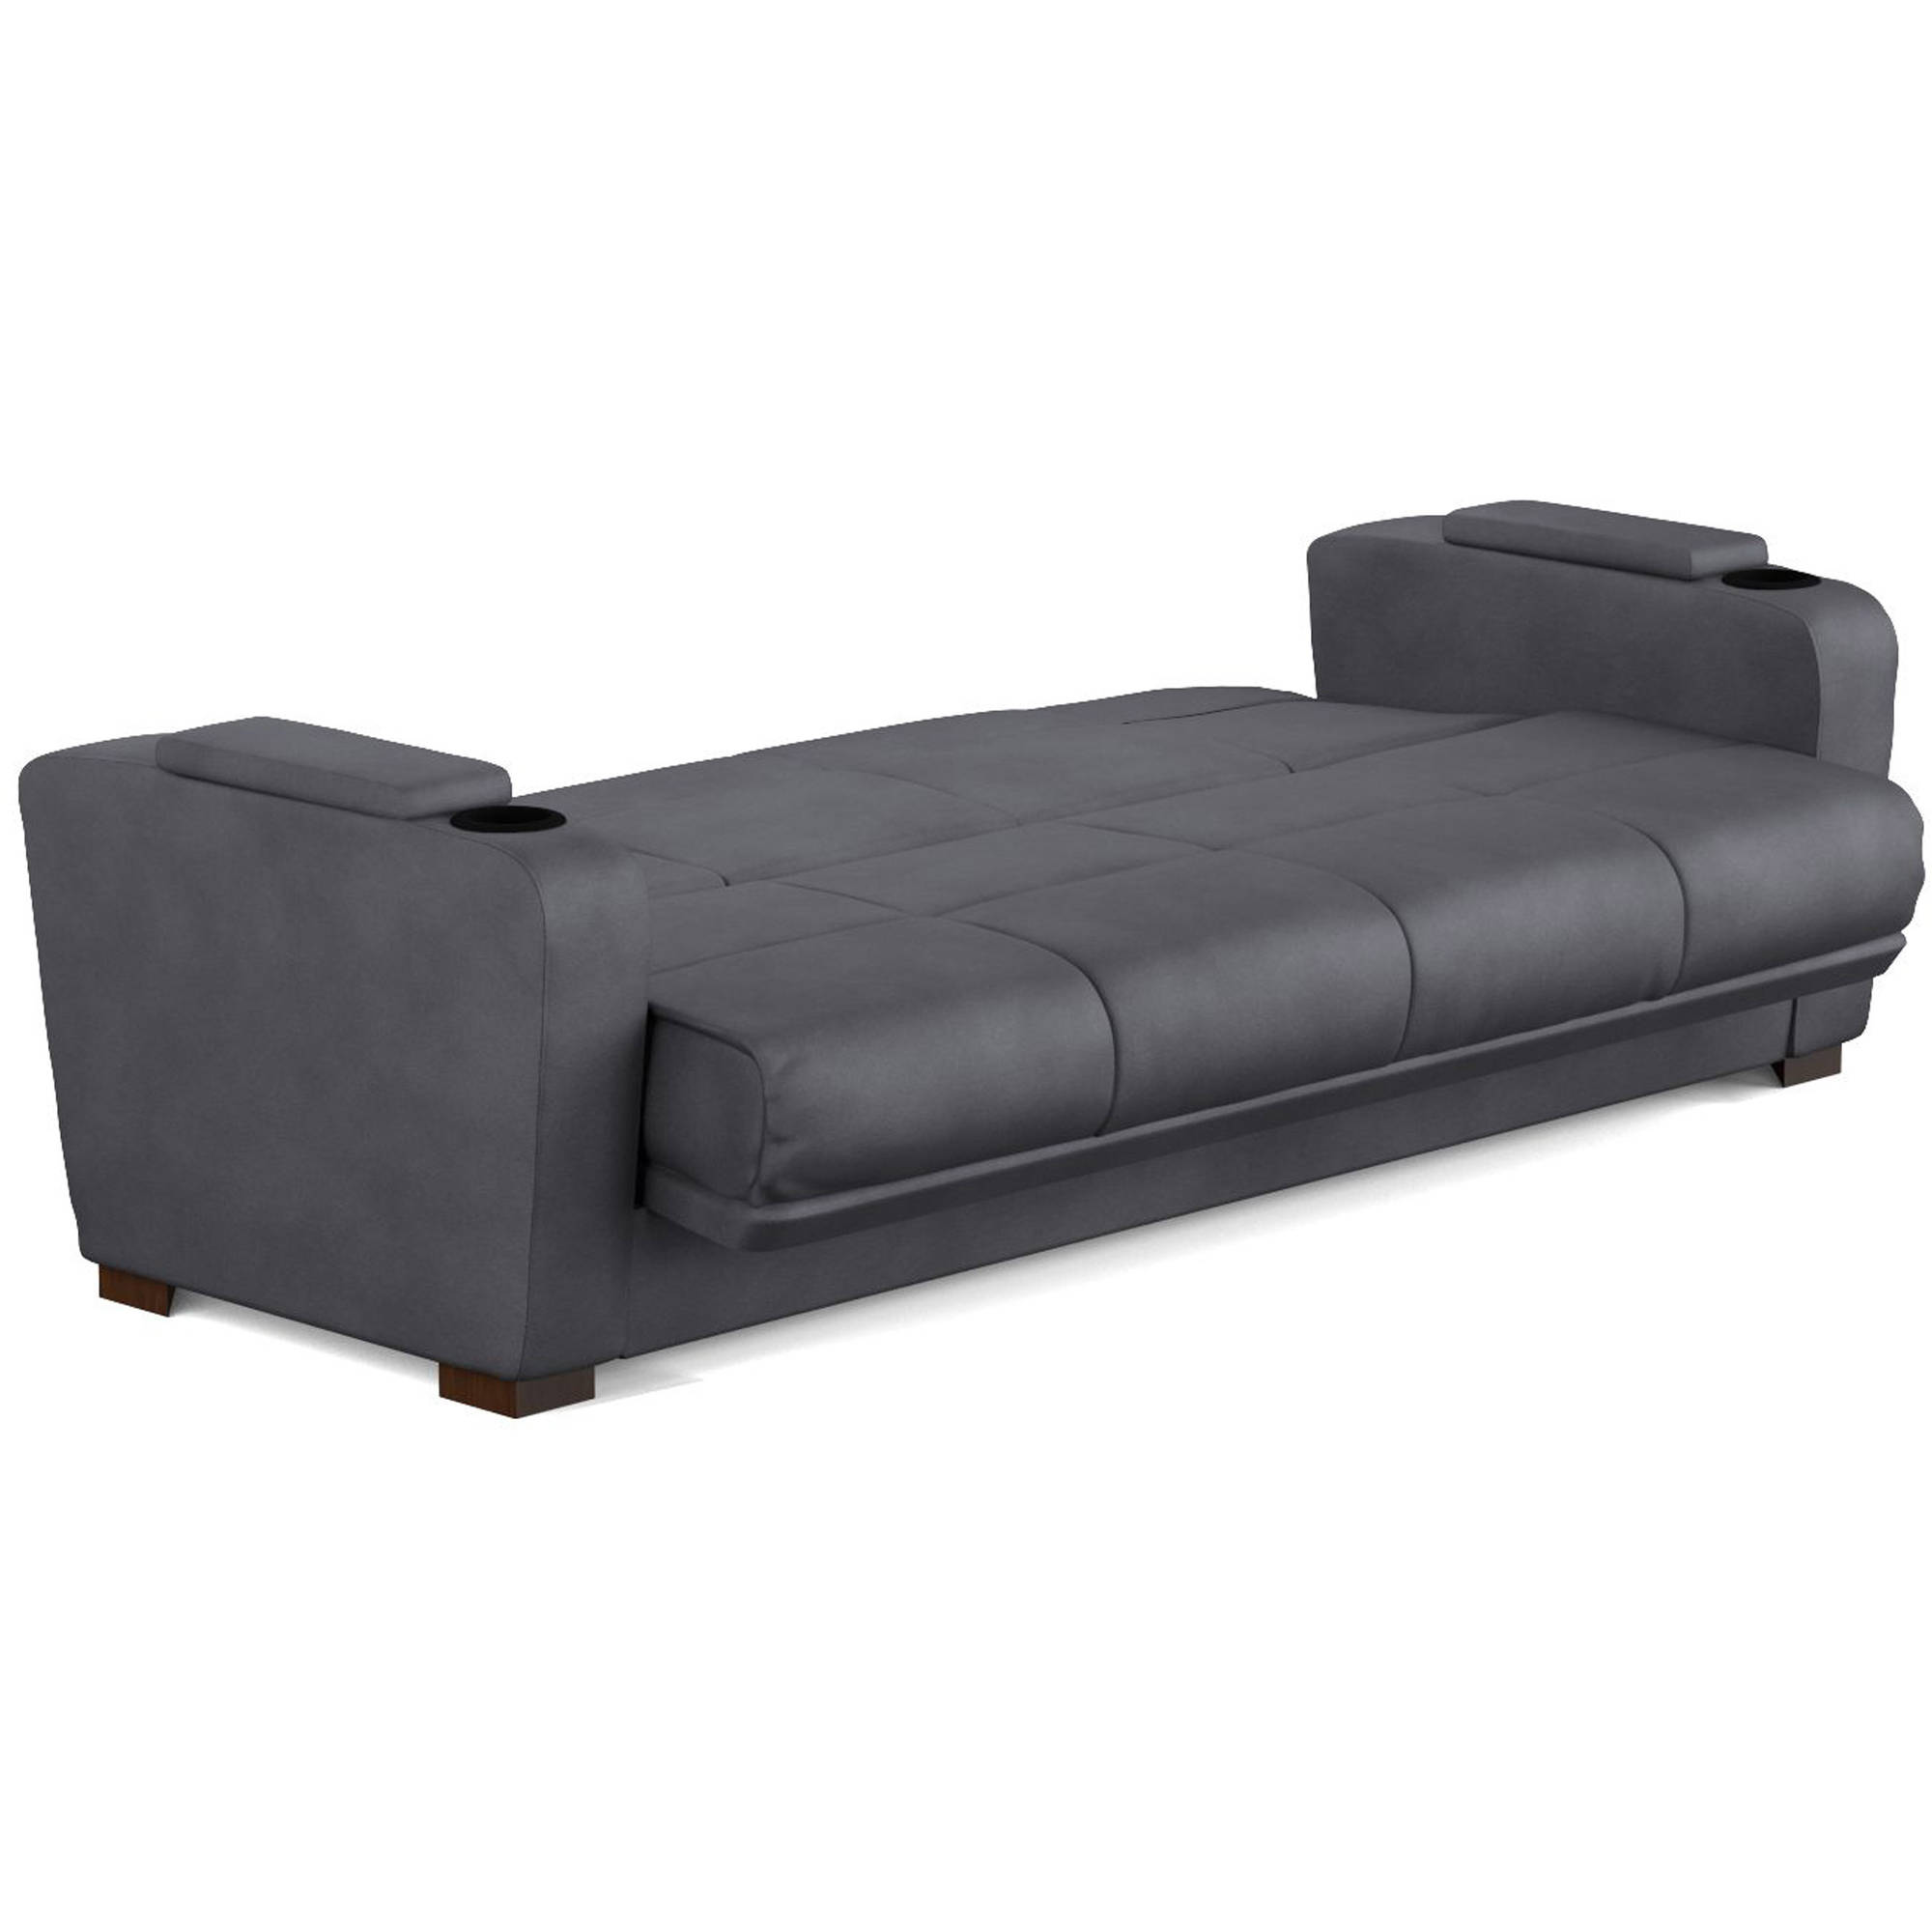 Mainstays Tyler Futon With Storage Sofa Sleeper Bed Multiple Colors